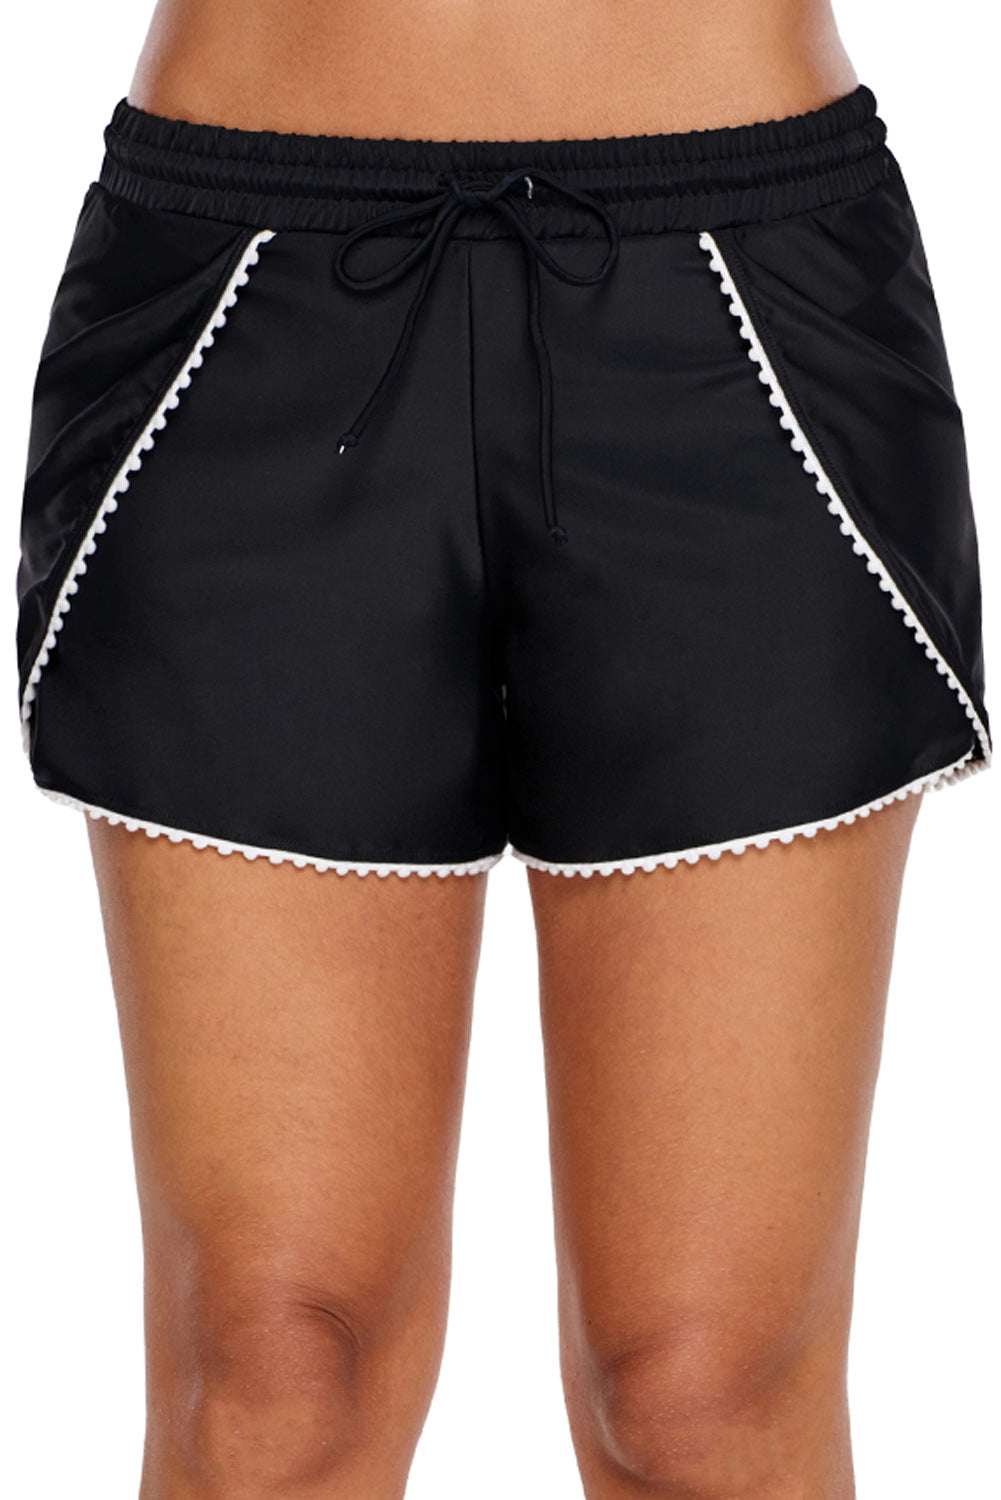 Scalloped Trim Flap Cover Black Swim Shorts